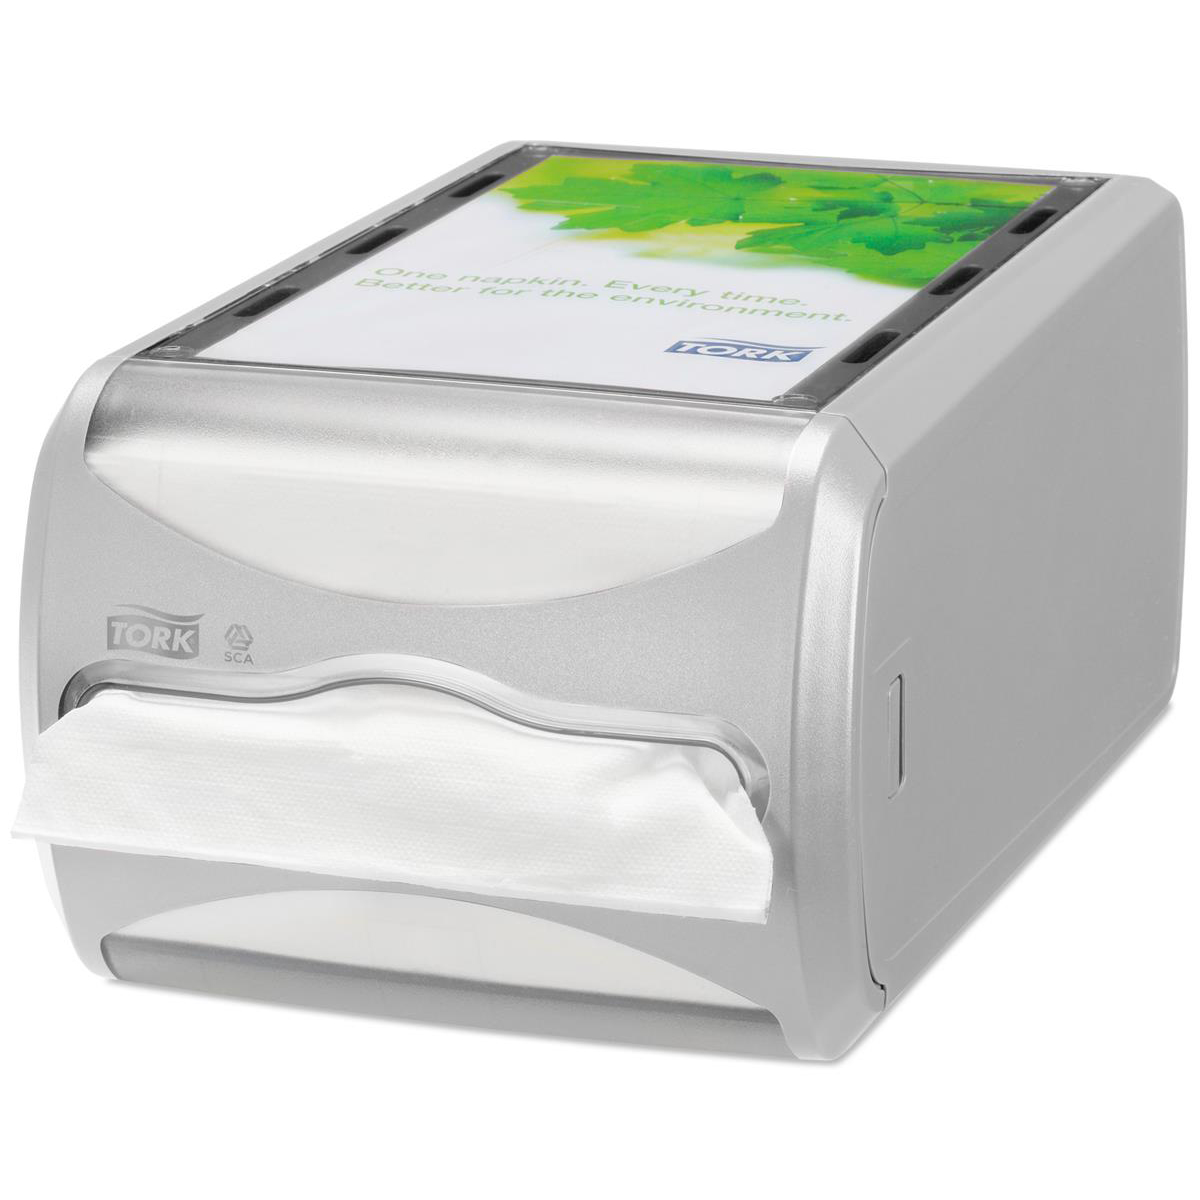 Serviettes / Napkins Tork Xpressnap Counter Napkin Dispenser One-at-a-Time Grey Ref 272513